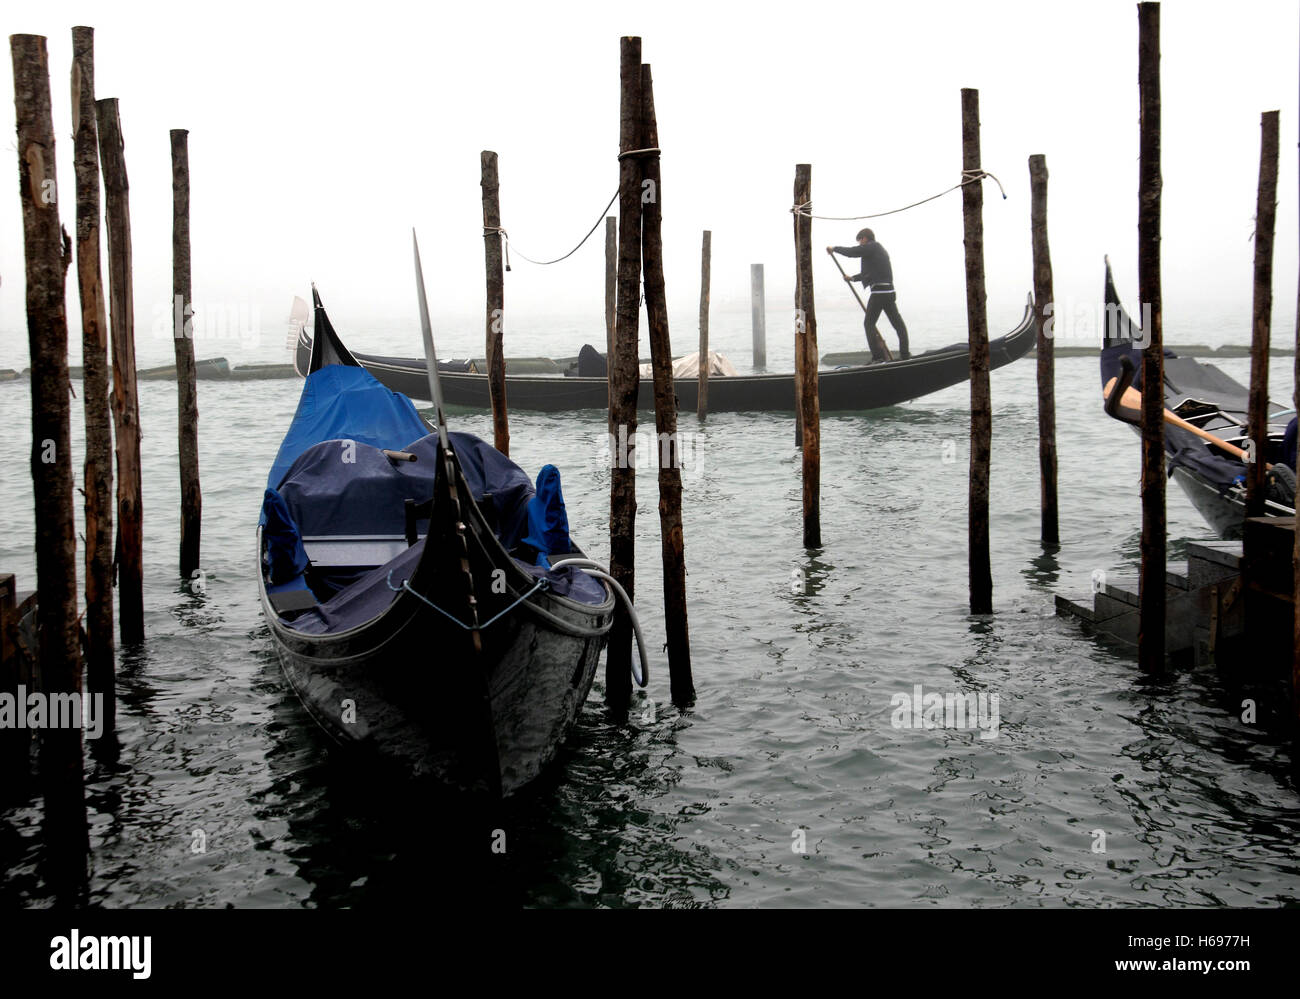 `A misty morning in Venice provides the classic view of gondolas and gondolier - Stock Image